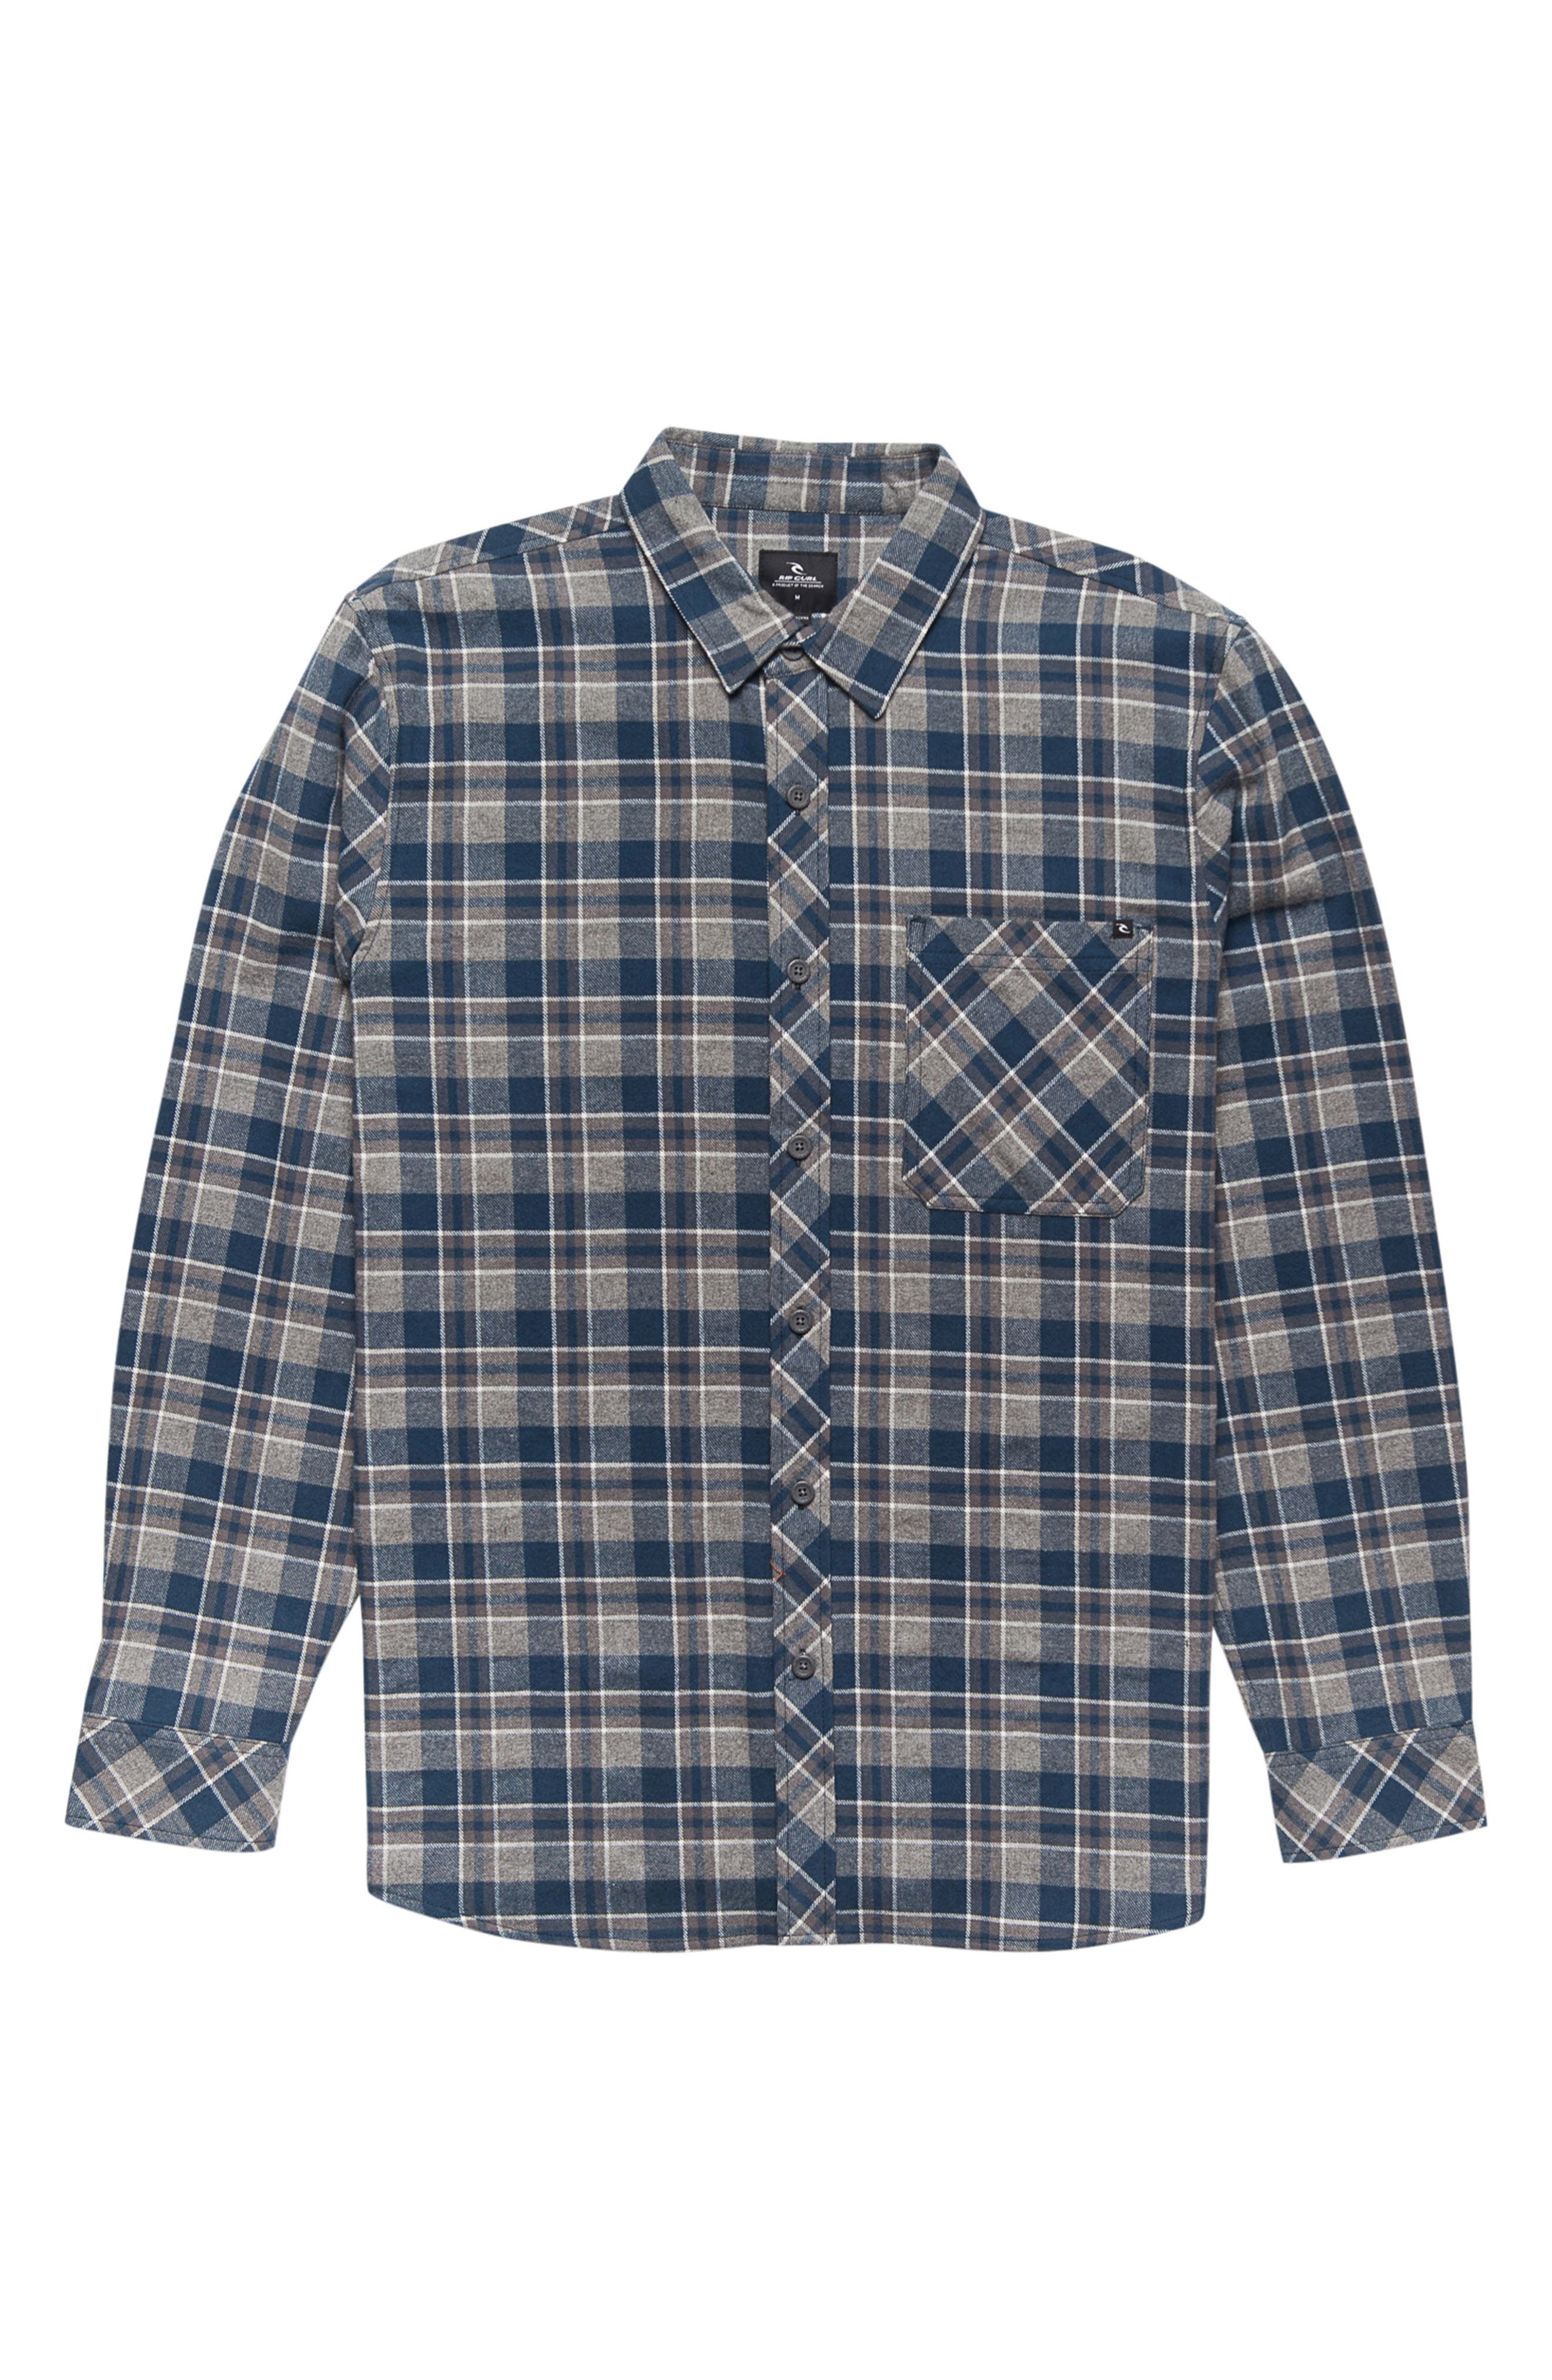 Mundo Plaid Flannel Shirt,                         Main,                         color, 410